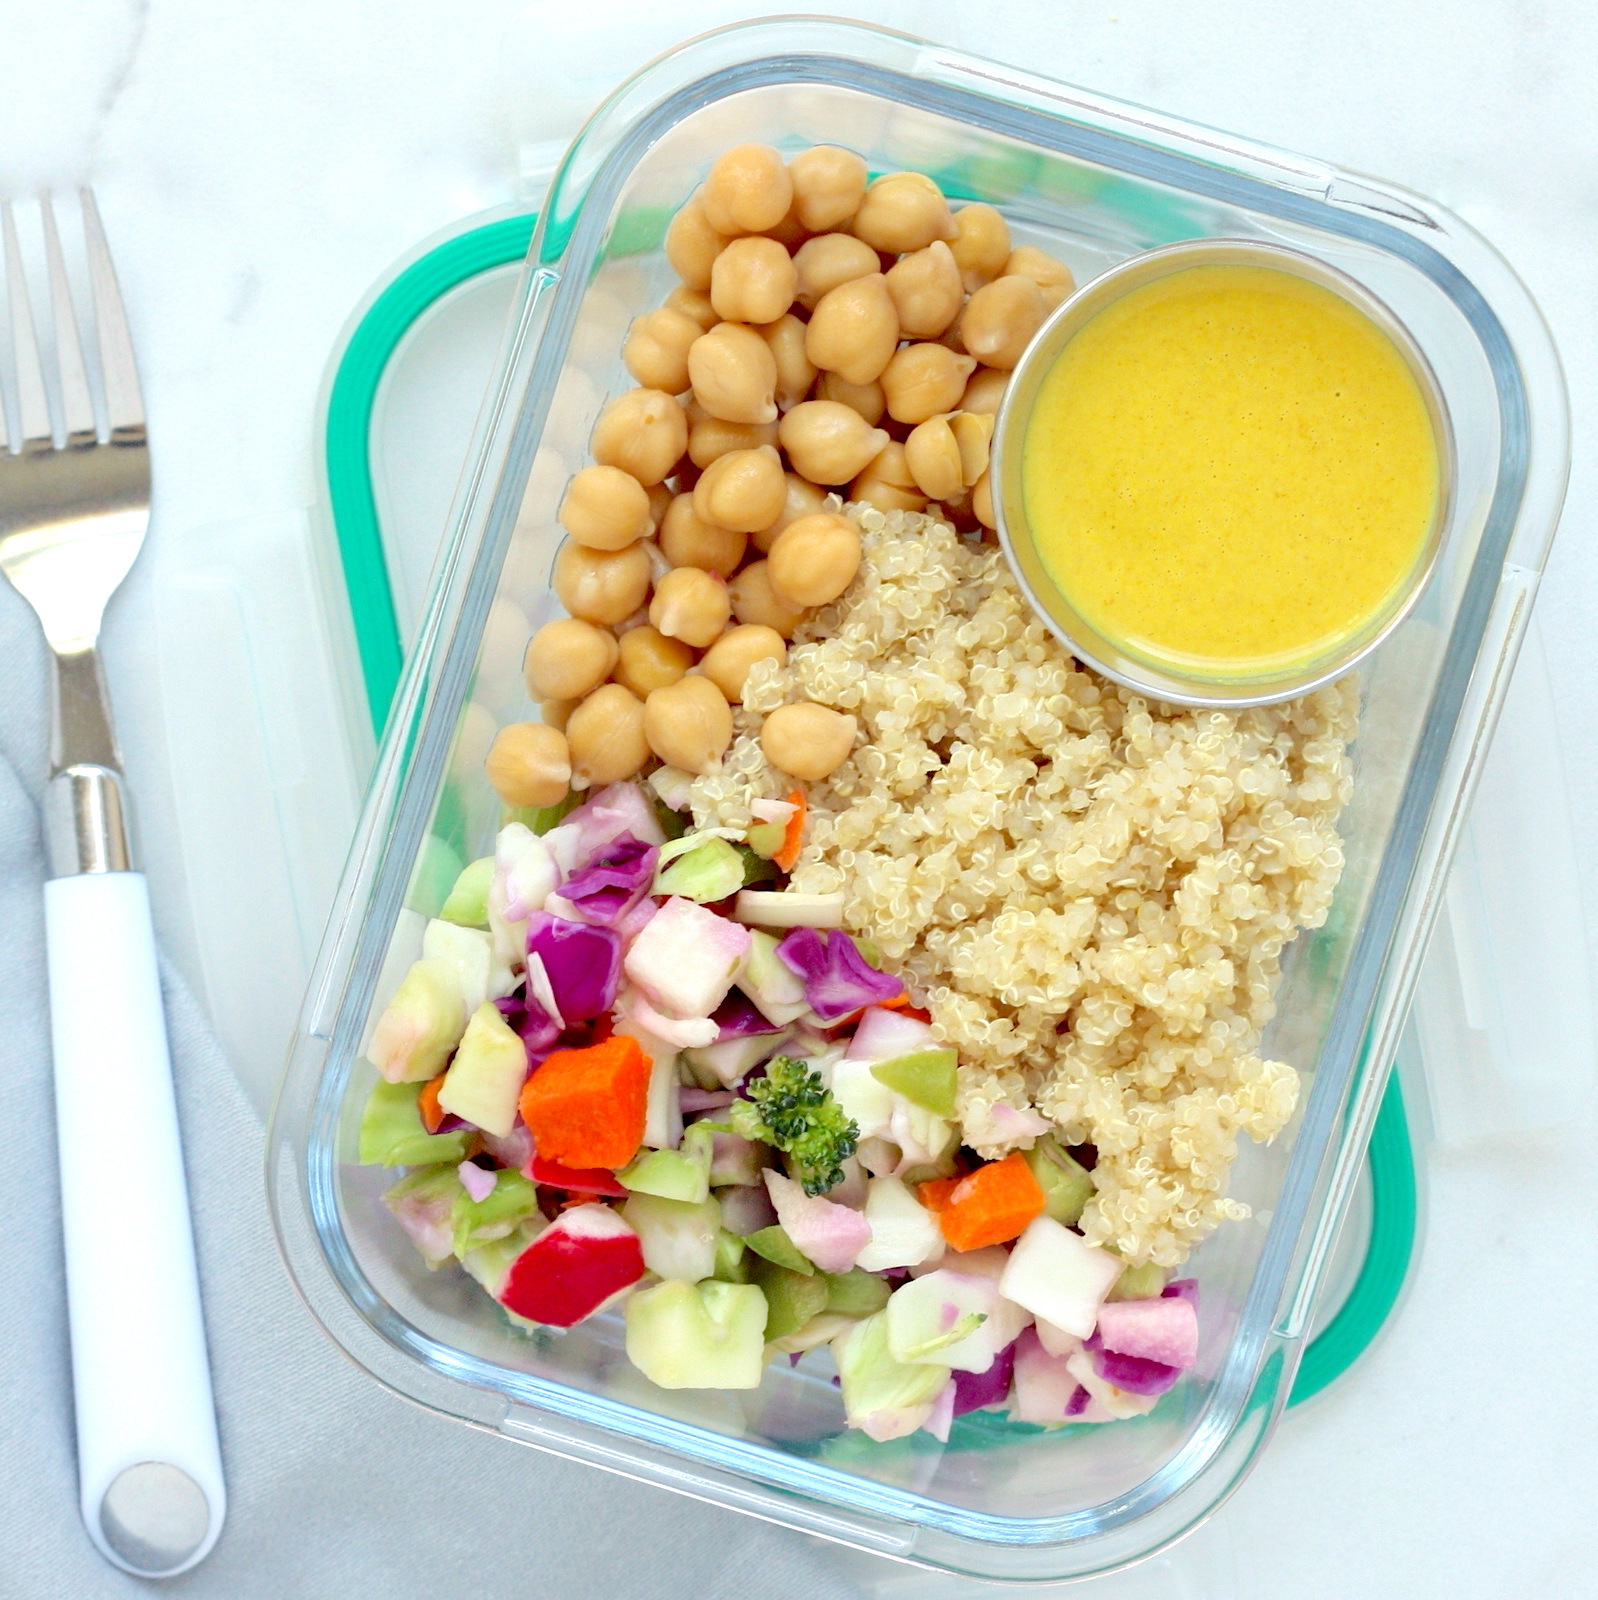 trader joes weight loss lunches